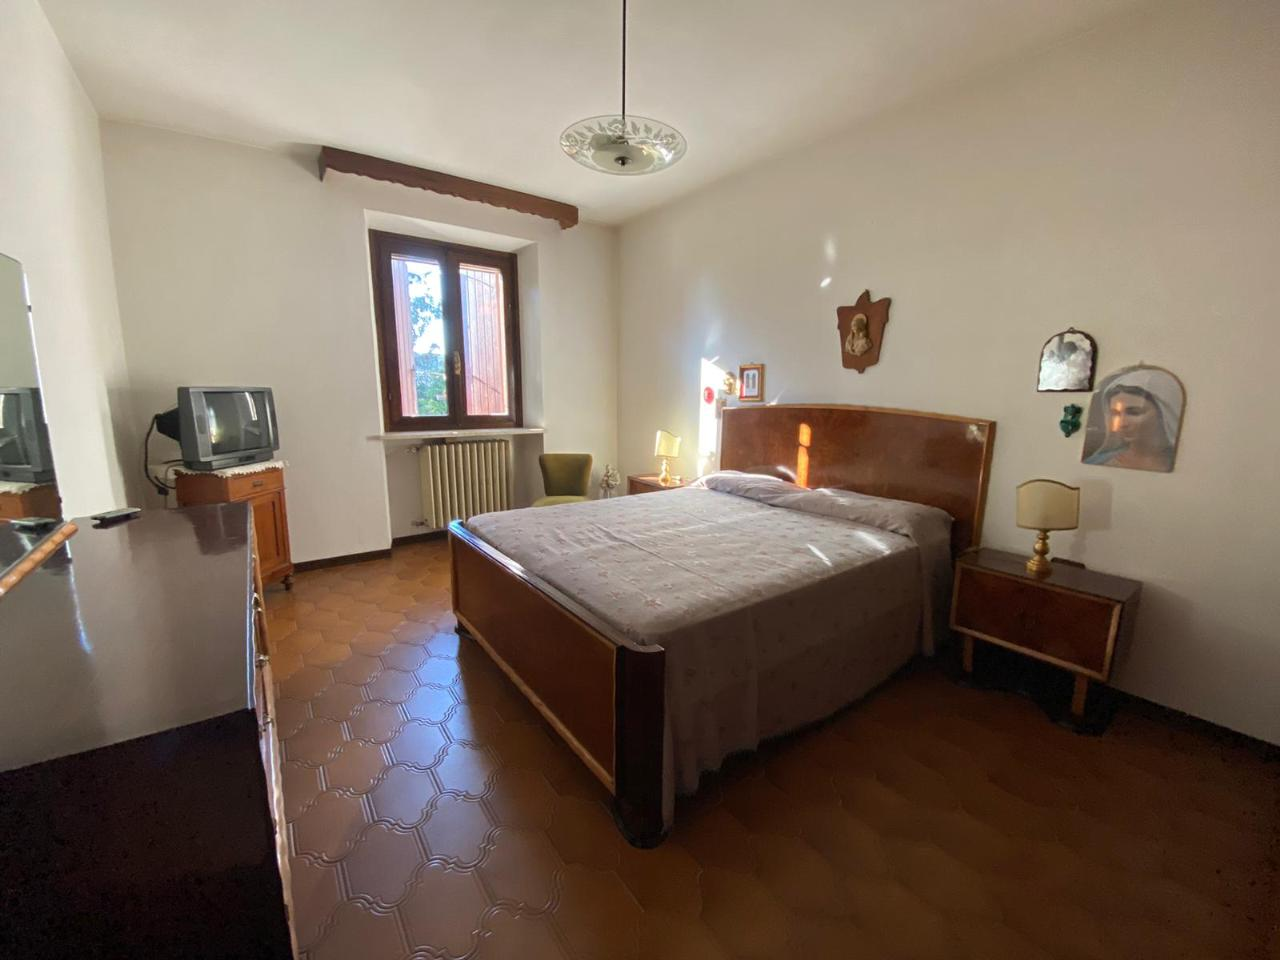 Cascina CELLA DATI €250.000,00